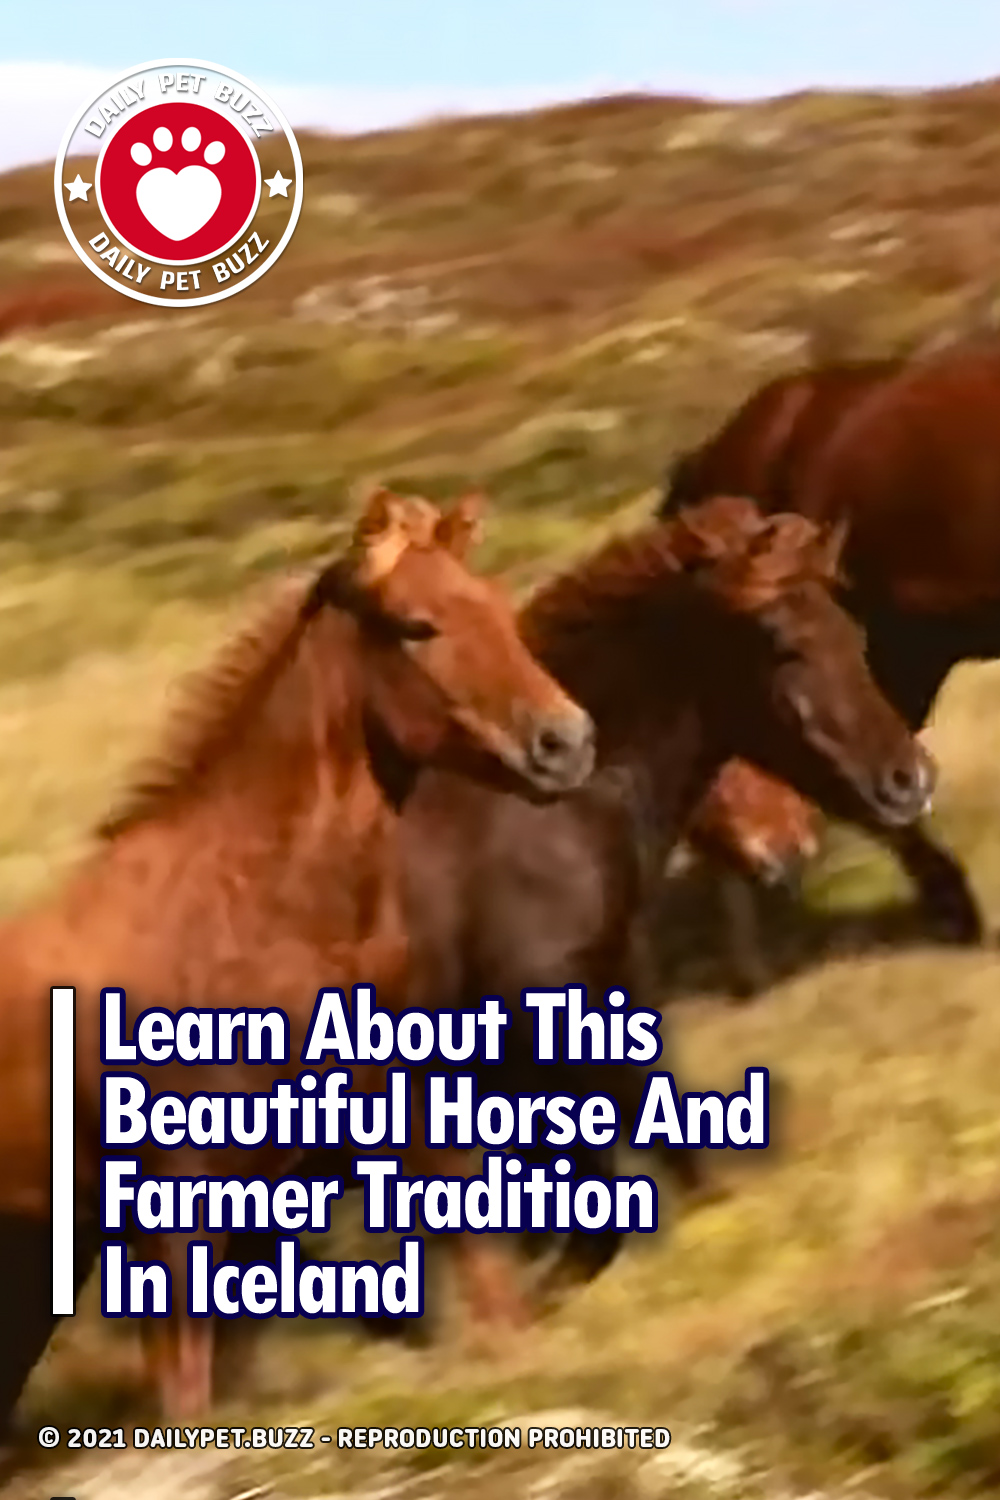 Learn About This Beautiful Horse And Farmer Tradition In Iceland